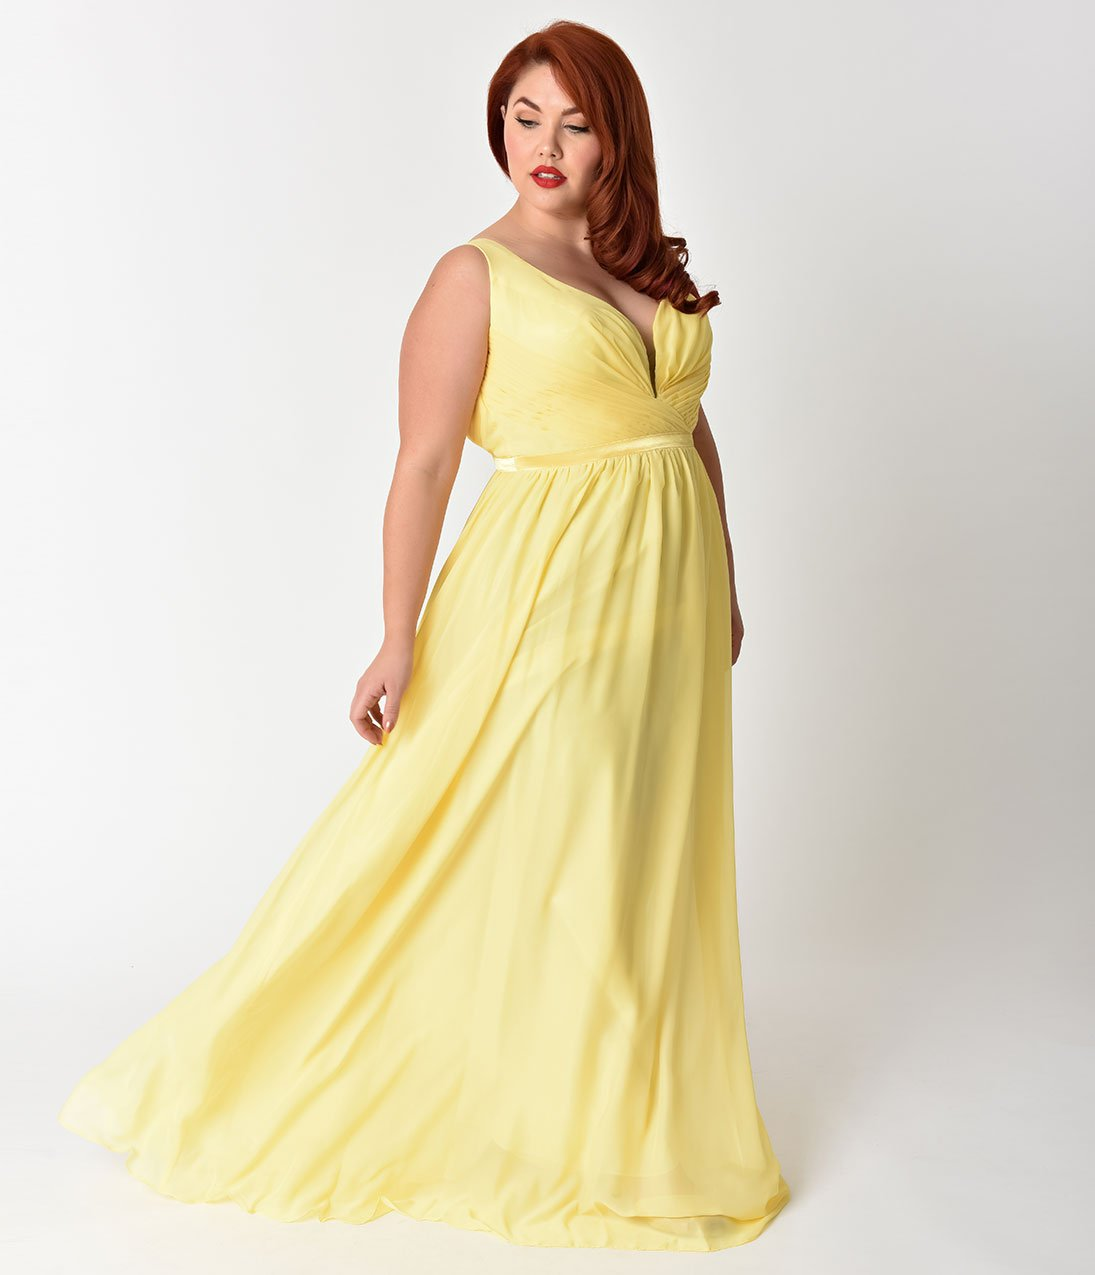 Disney prom dresses that will make you feel like the belle of the ...